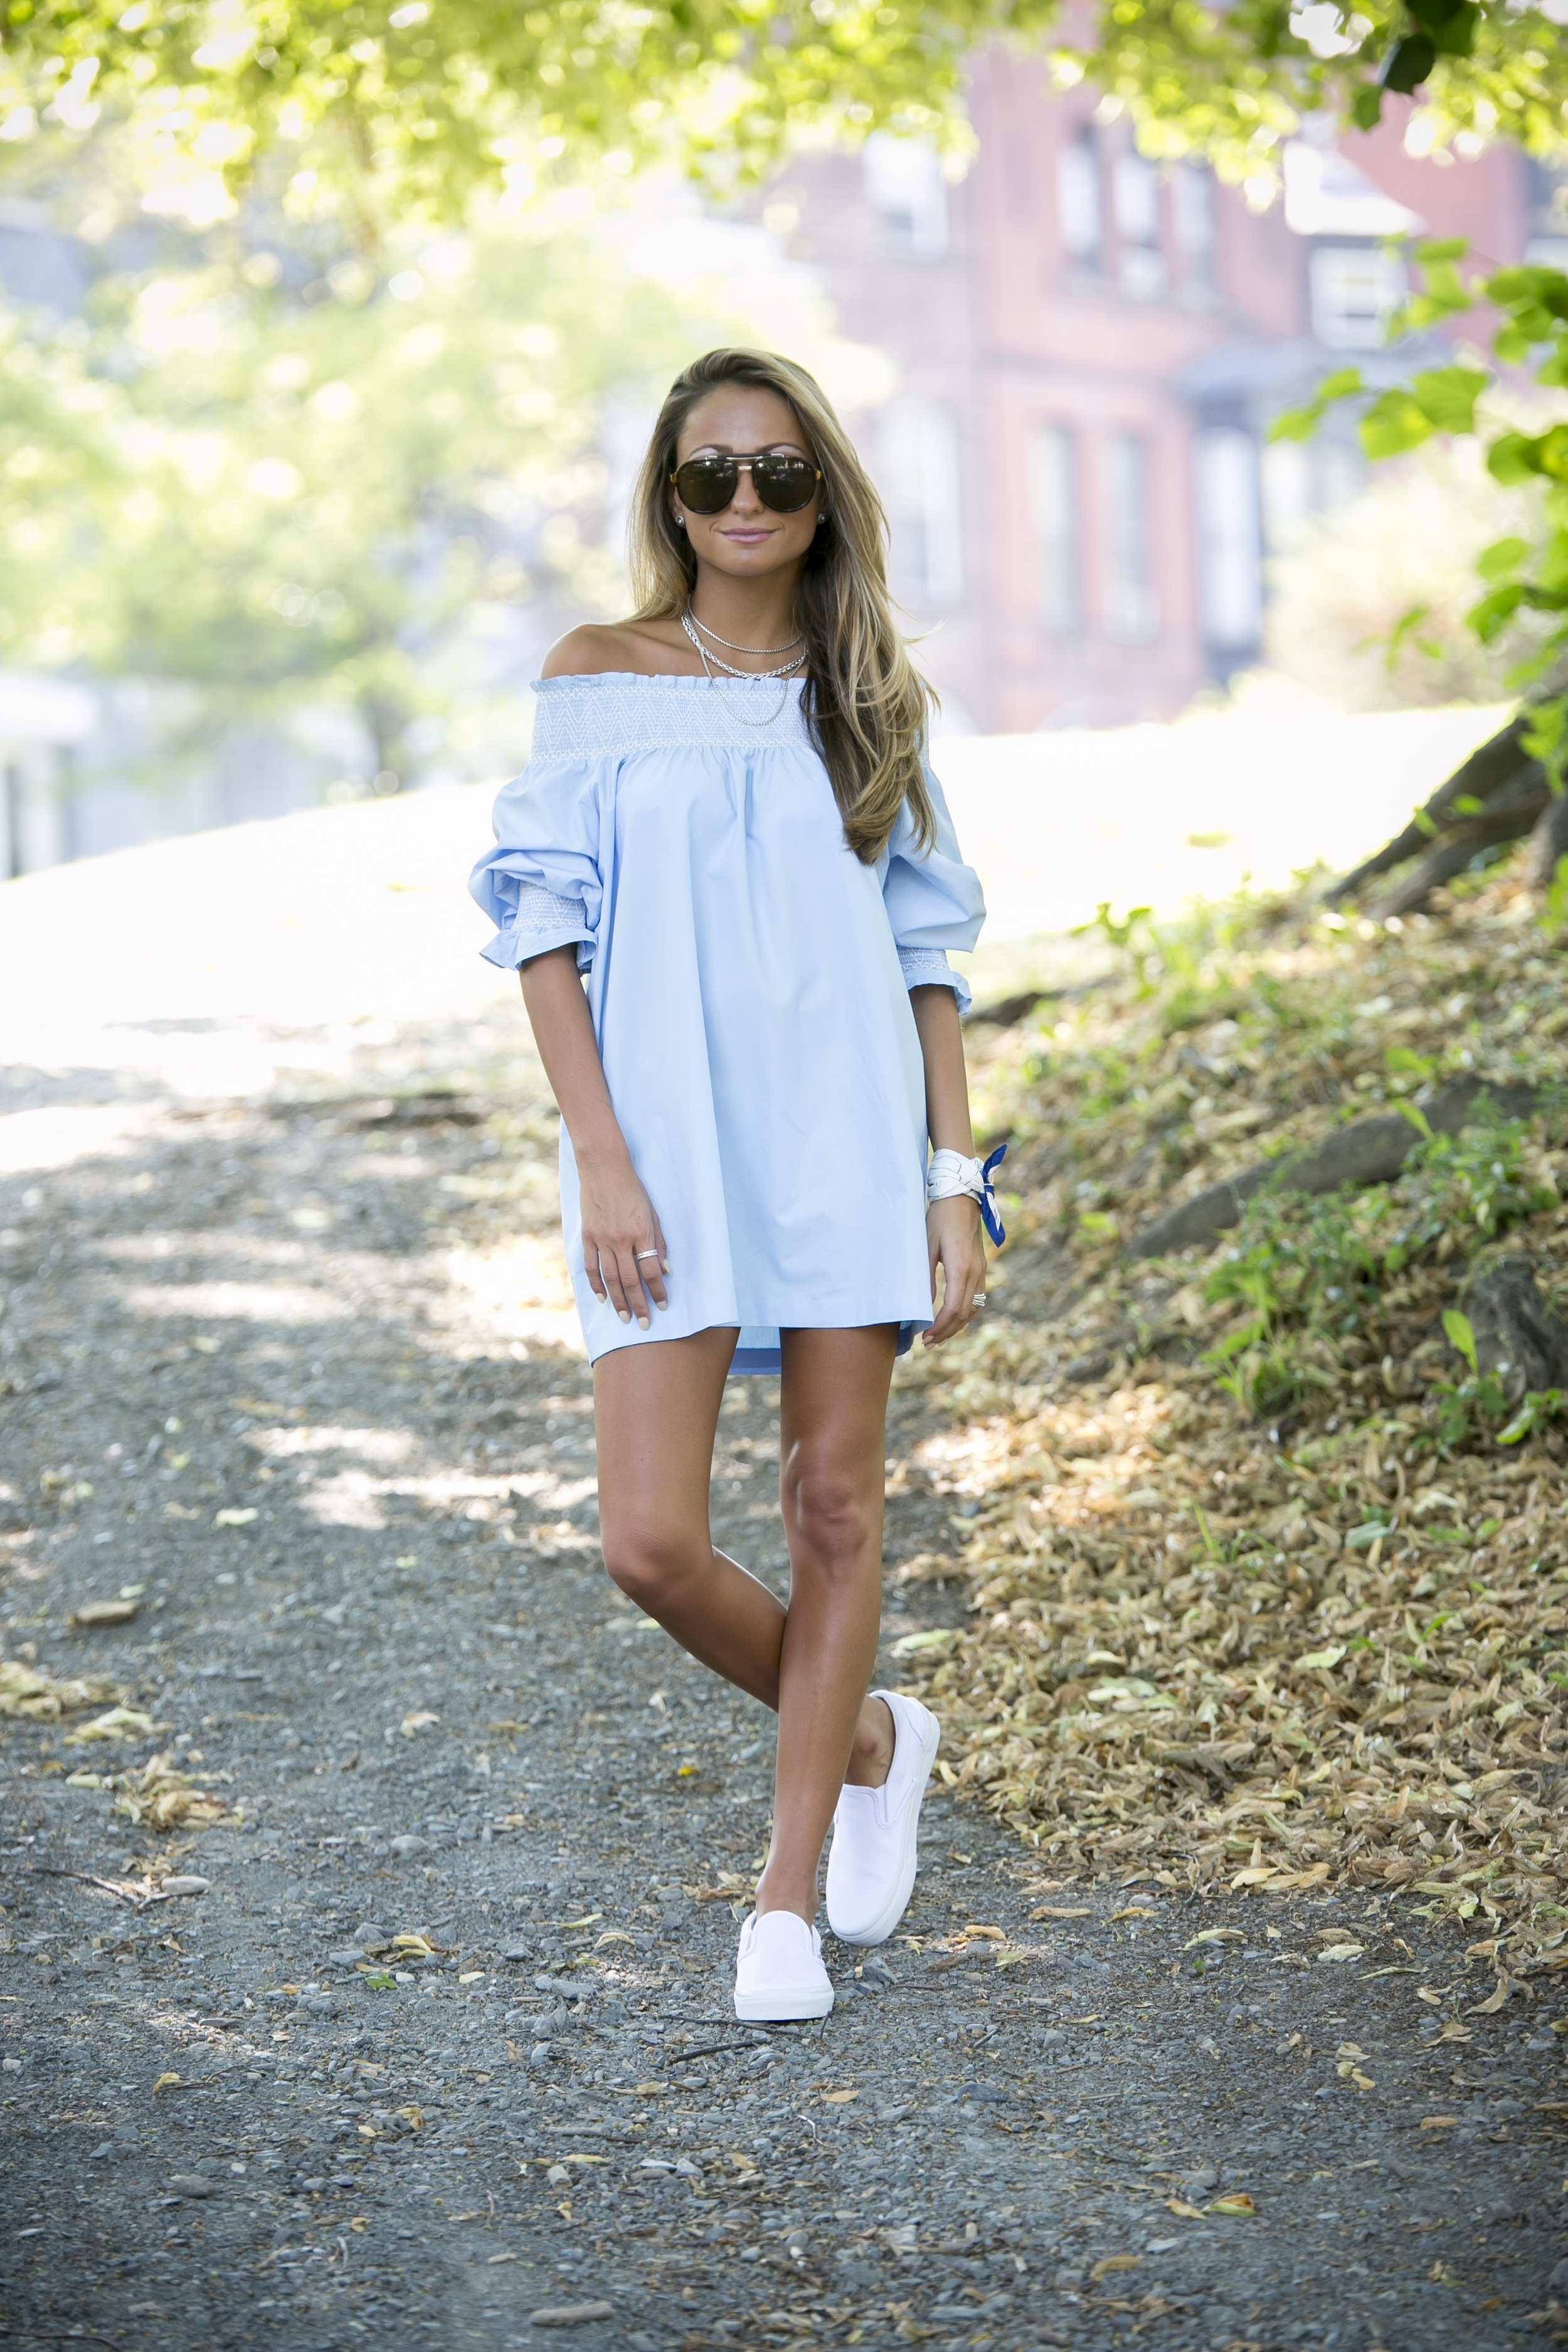 zara off of the shoulder dress trending for summer as seen on fashion blogger north of manhattan